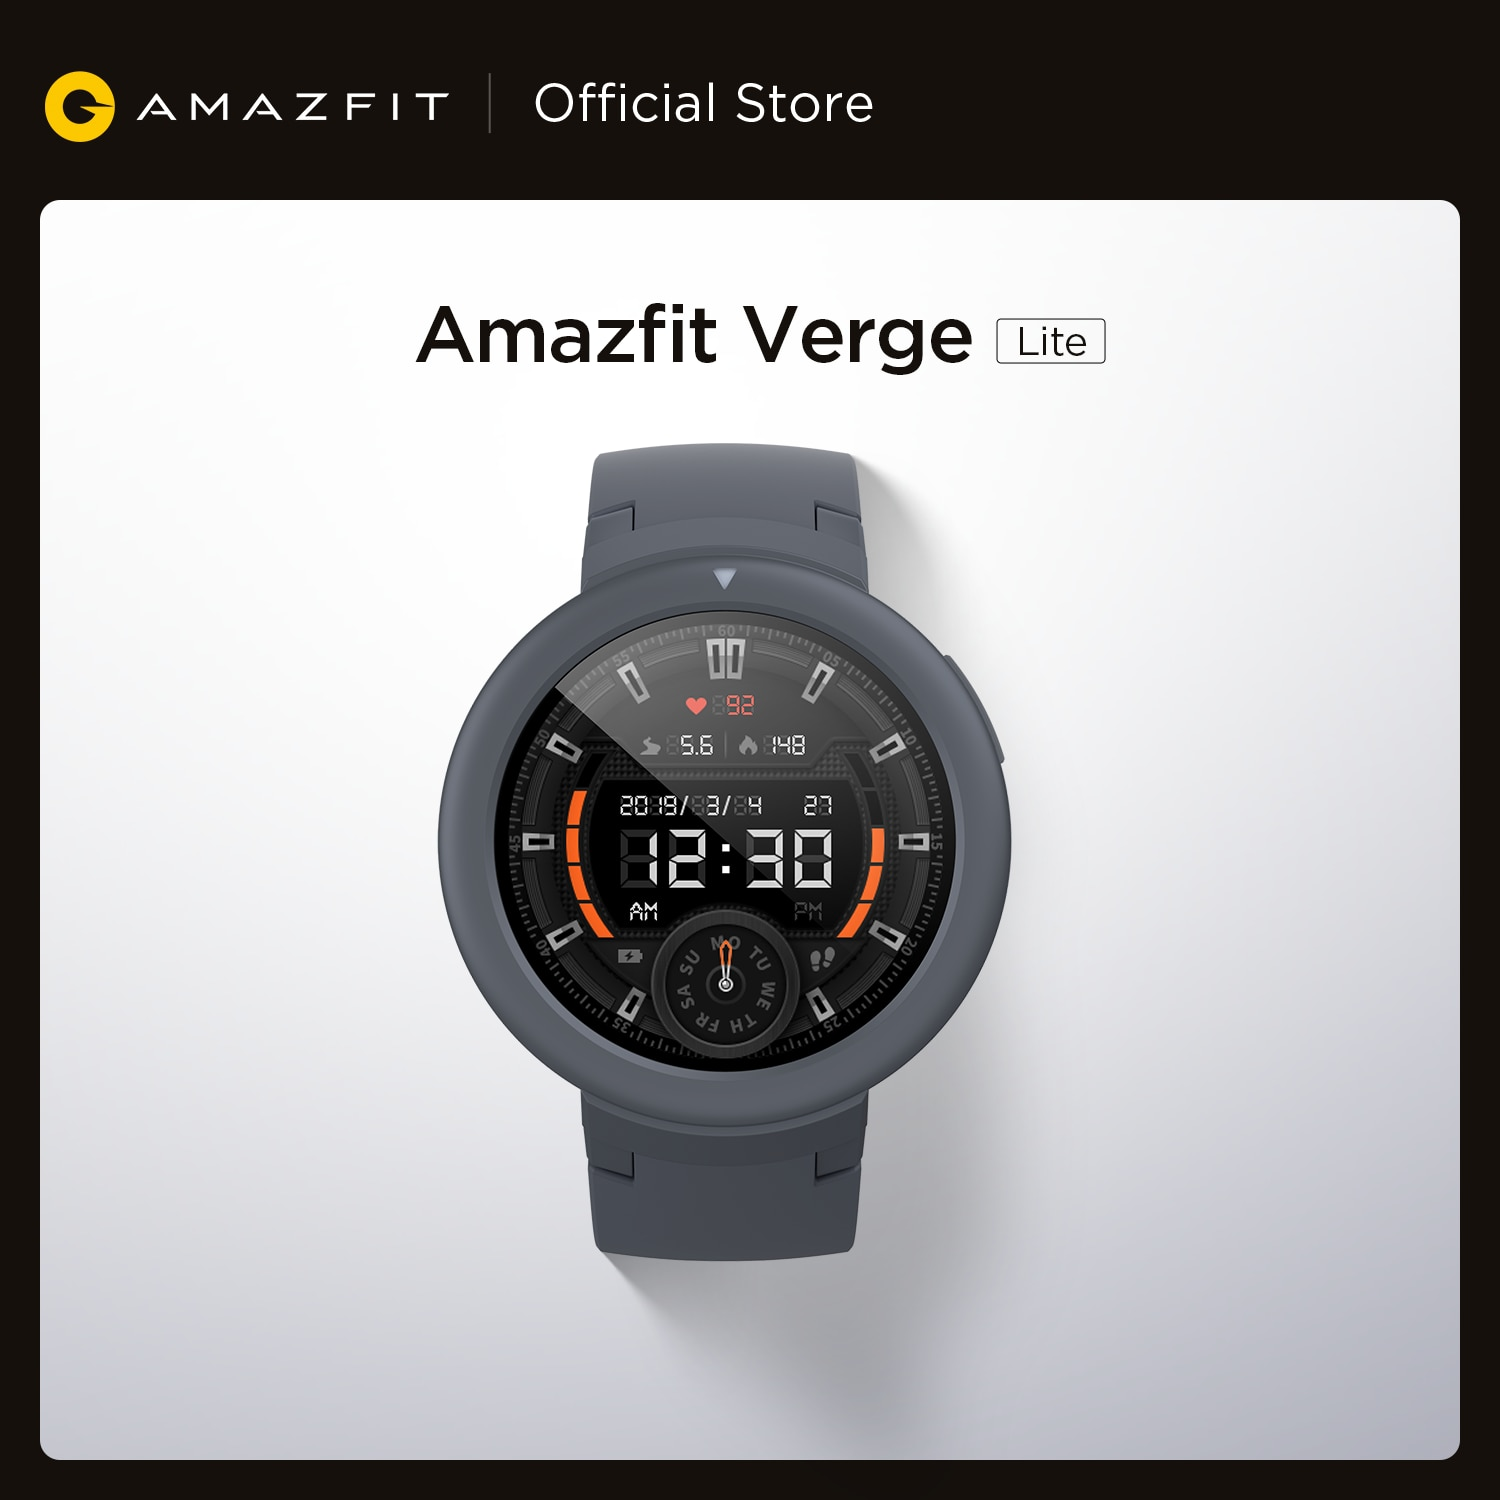 Global Version New Amazfit Verge Lite Smartwatch Pedometer Watch AMOLED Sports Tracking GPS GLONASS for Android Phone iOS